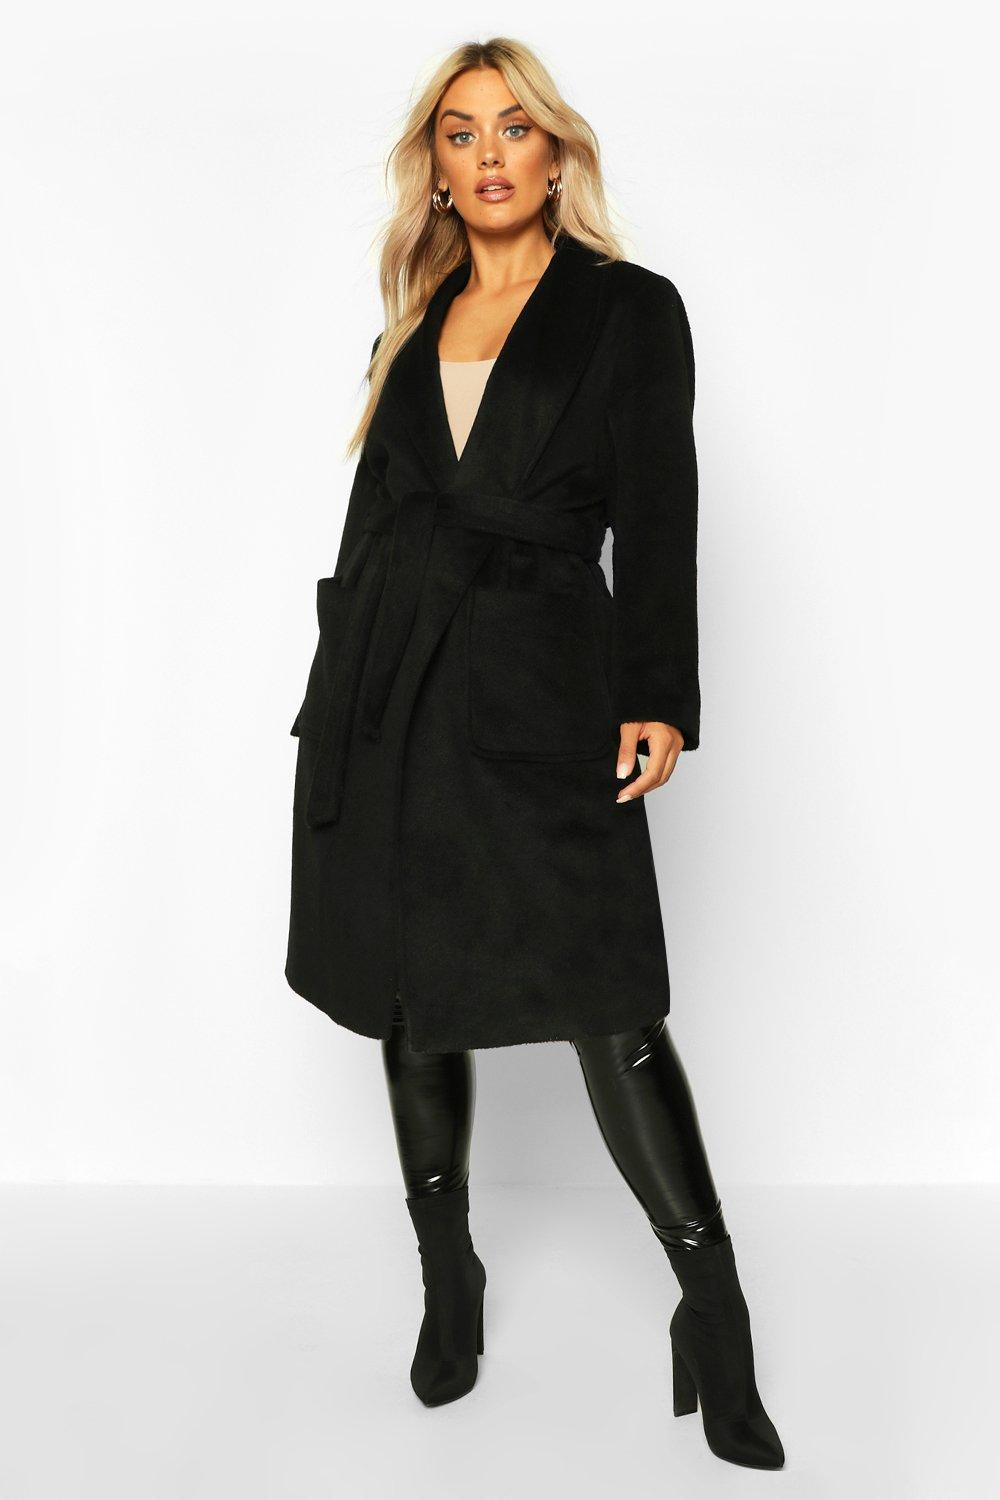 boohoo Womens Plus Brushed Wool Look Belted Duster Coat - Black - 20, Black